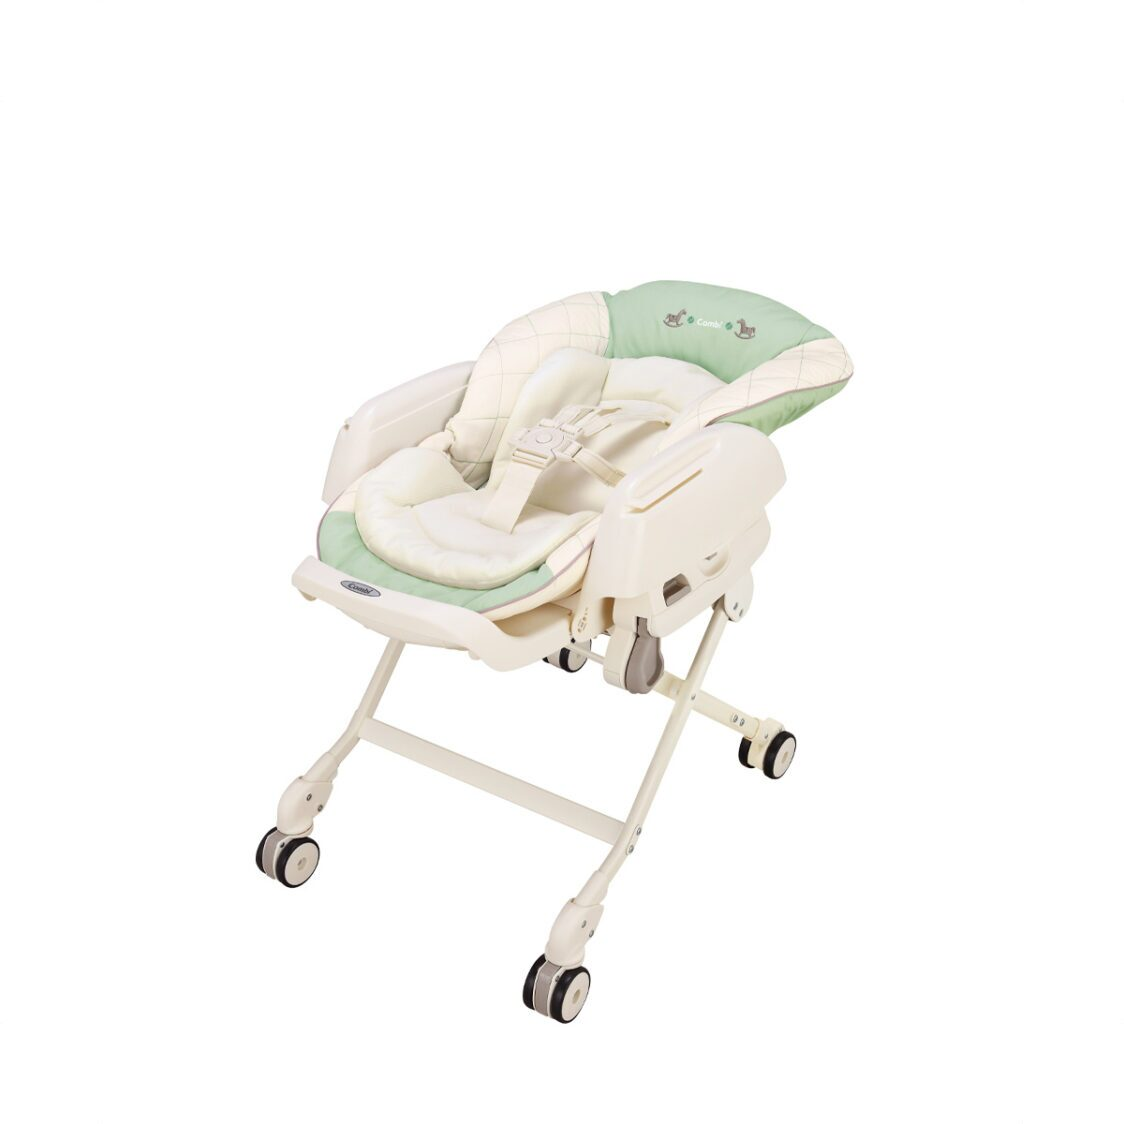 Combi Dreamy Milky Green Parenting Station New born48 Months 9KG